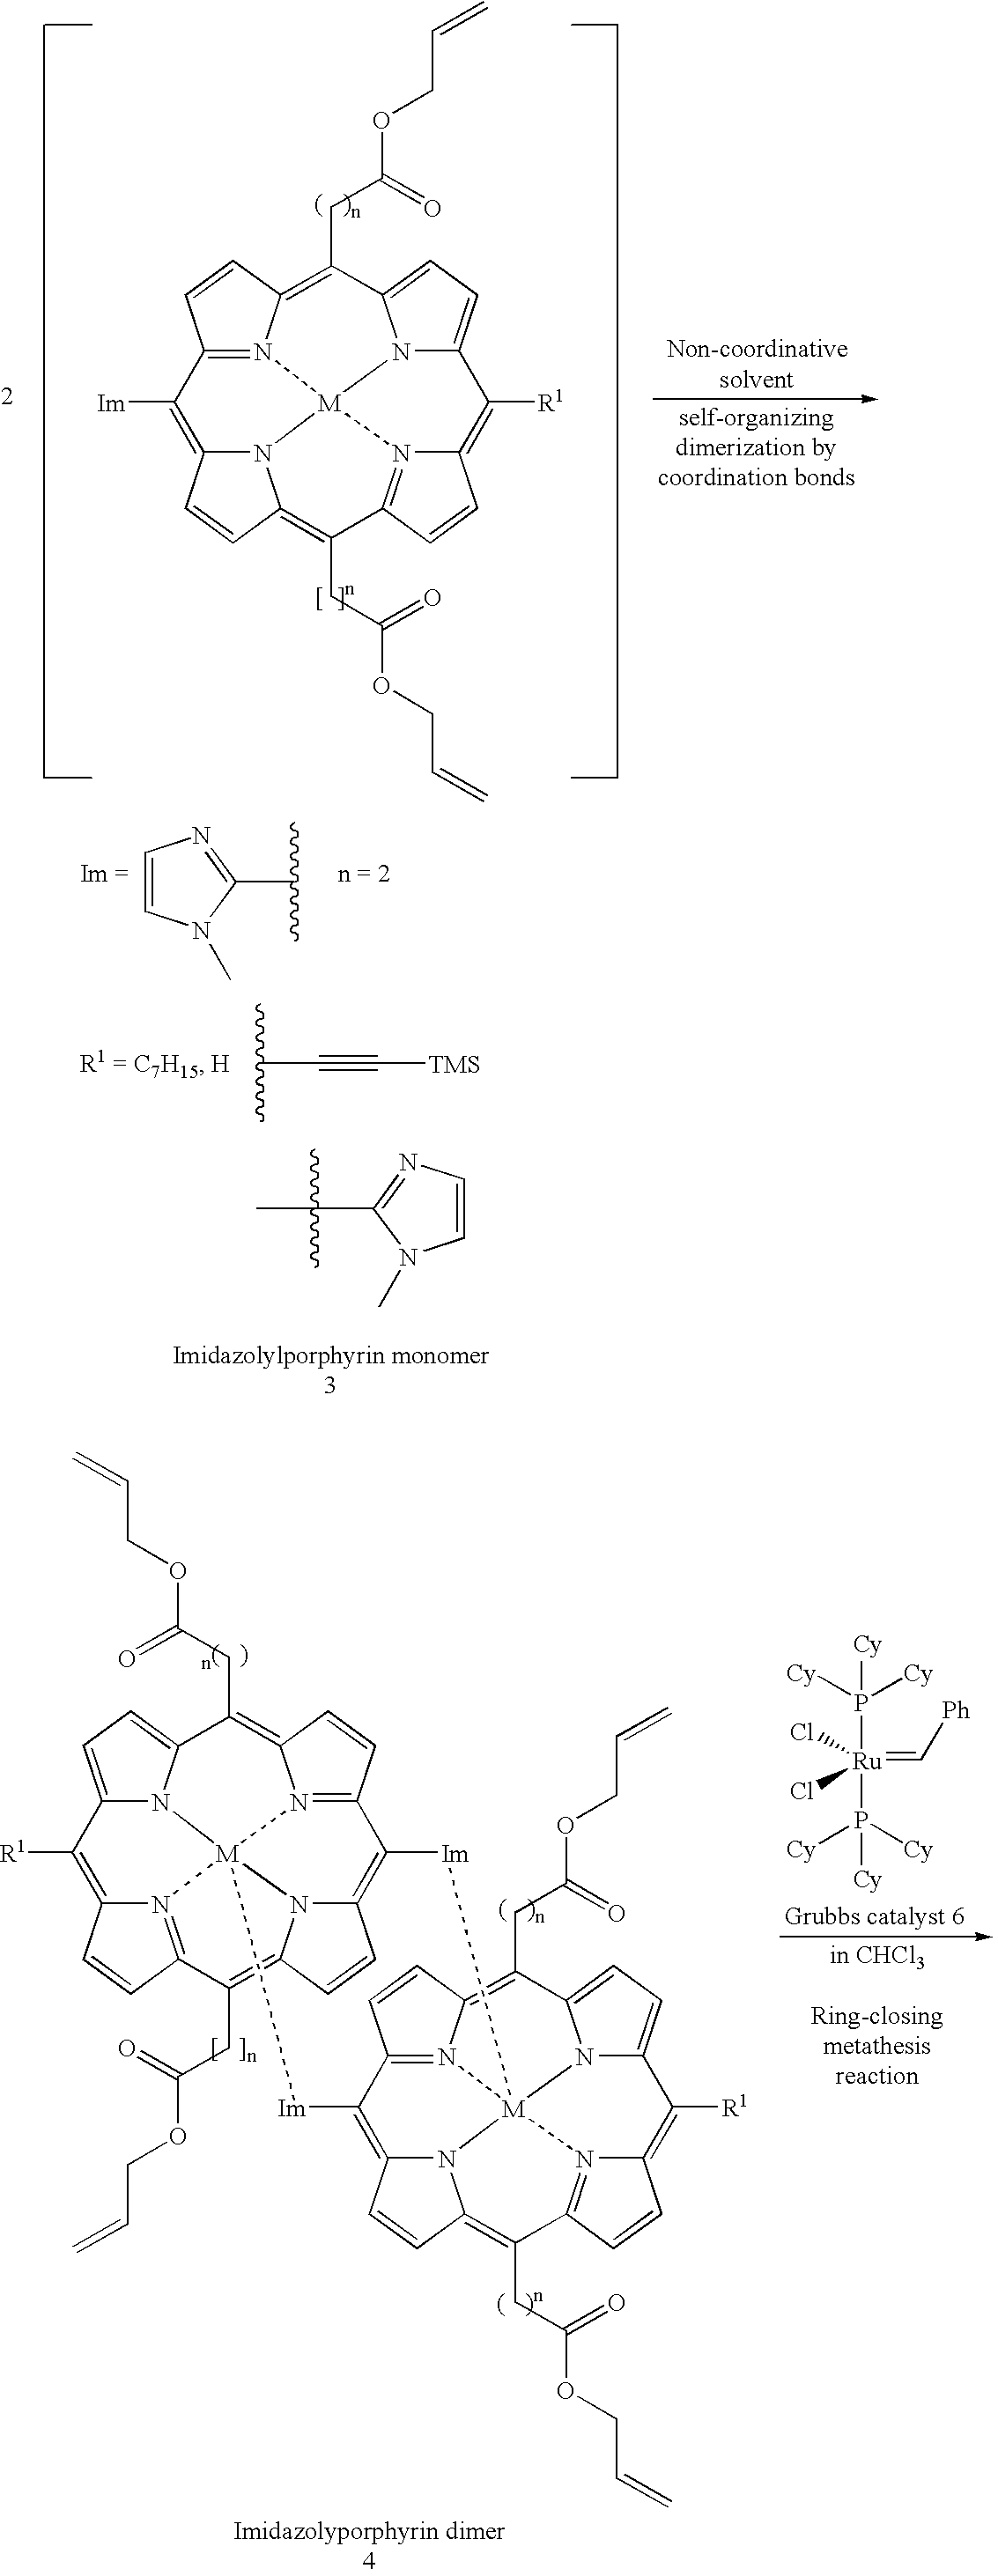 grubbs metathesis solvents The grubbs second generation ruthenium catalyst was shown to catalyze various olefin ring closing metathesis and any additives or co-solvents.